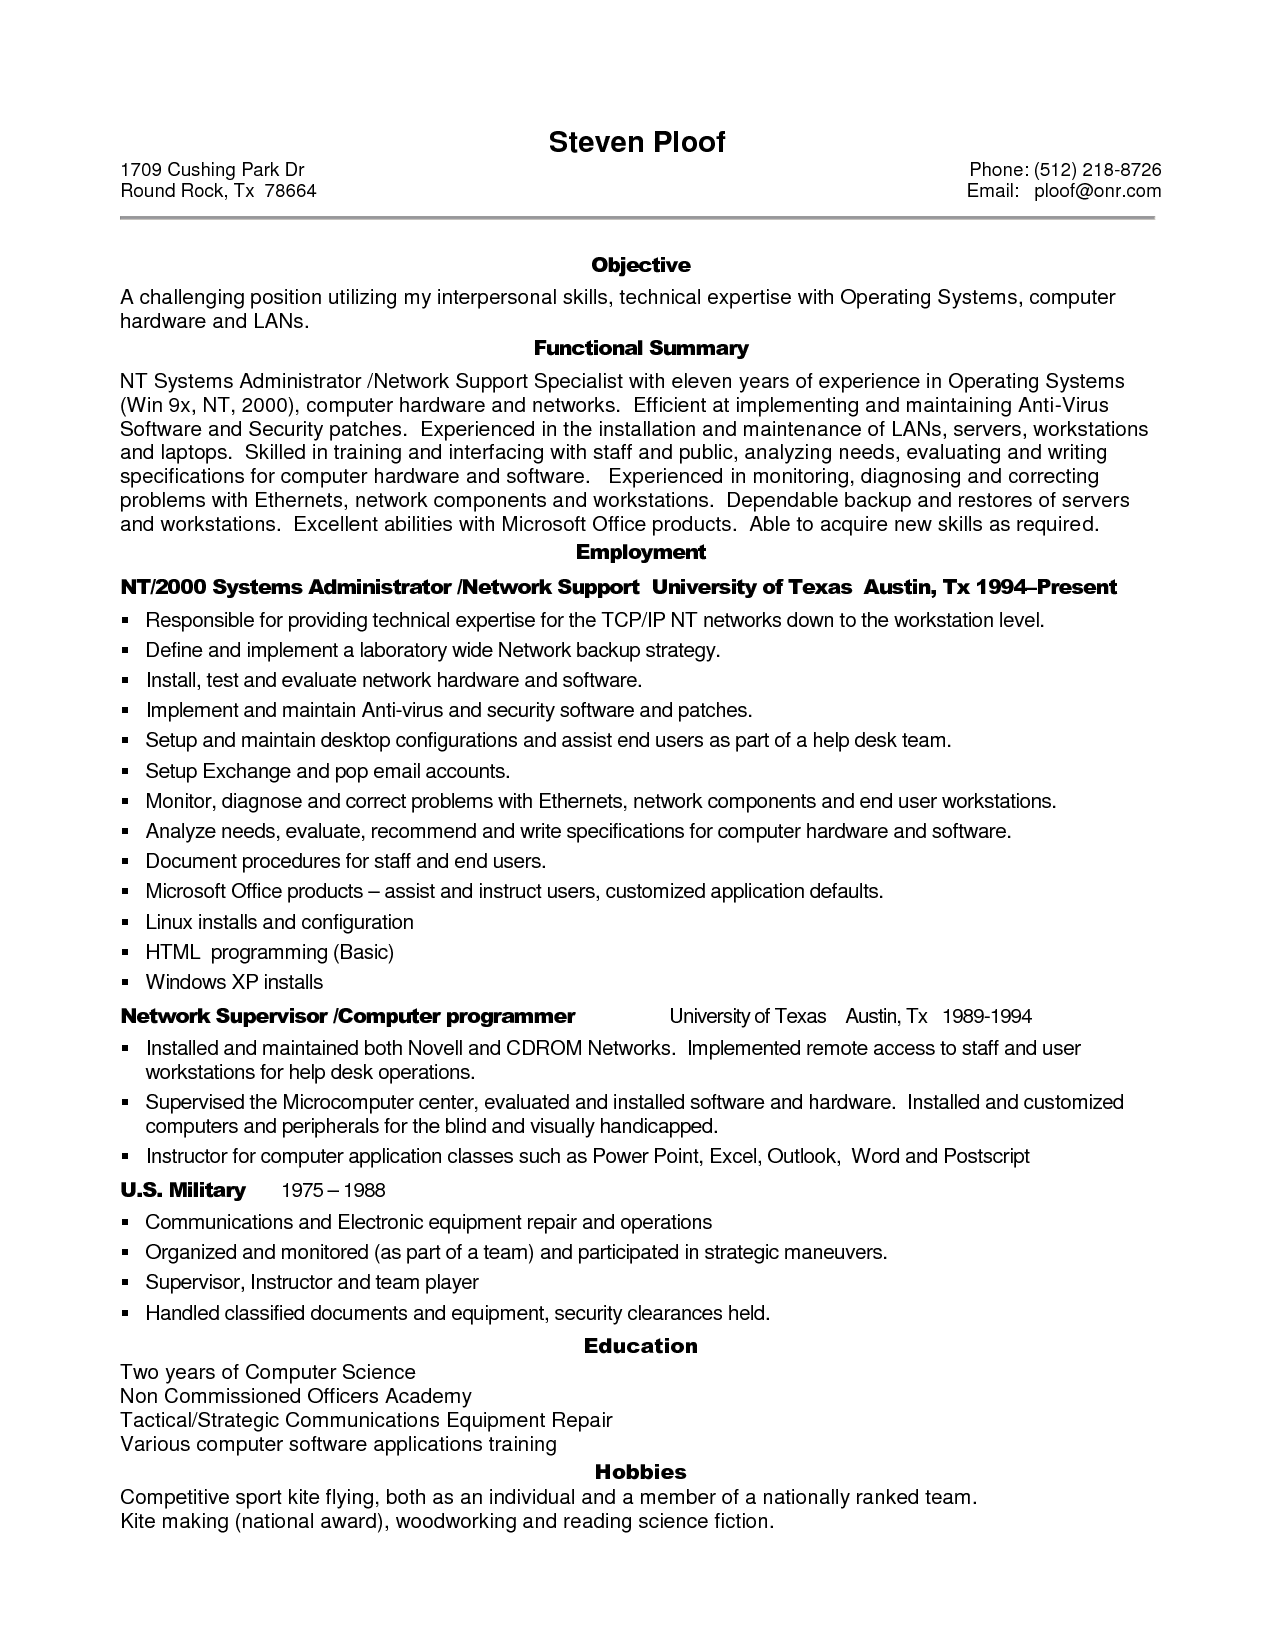 Sample Resume For Experienced It Professional Sample Resume For Experienced  It Professional, Resume Tips For  How To Write A Professional Resume Examples